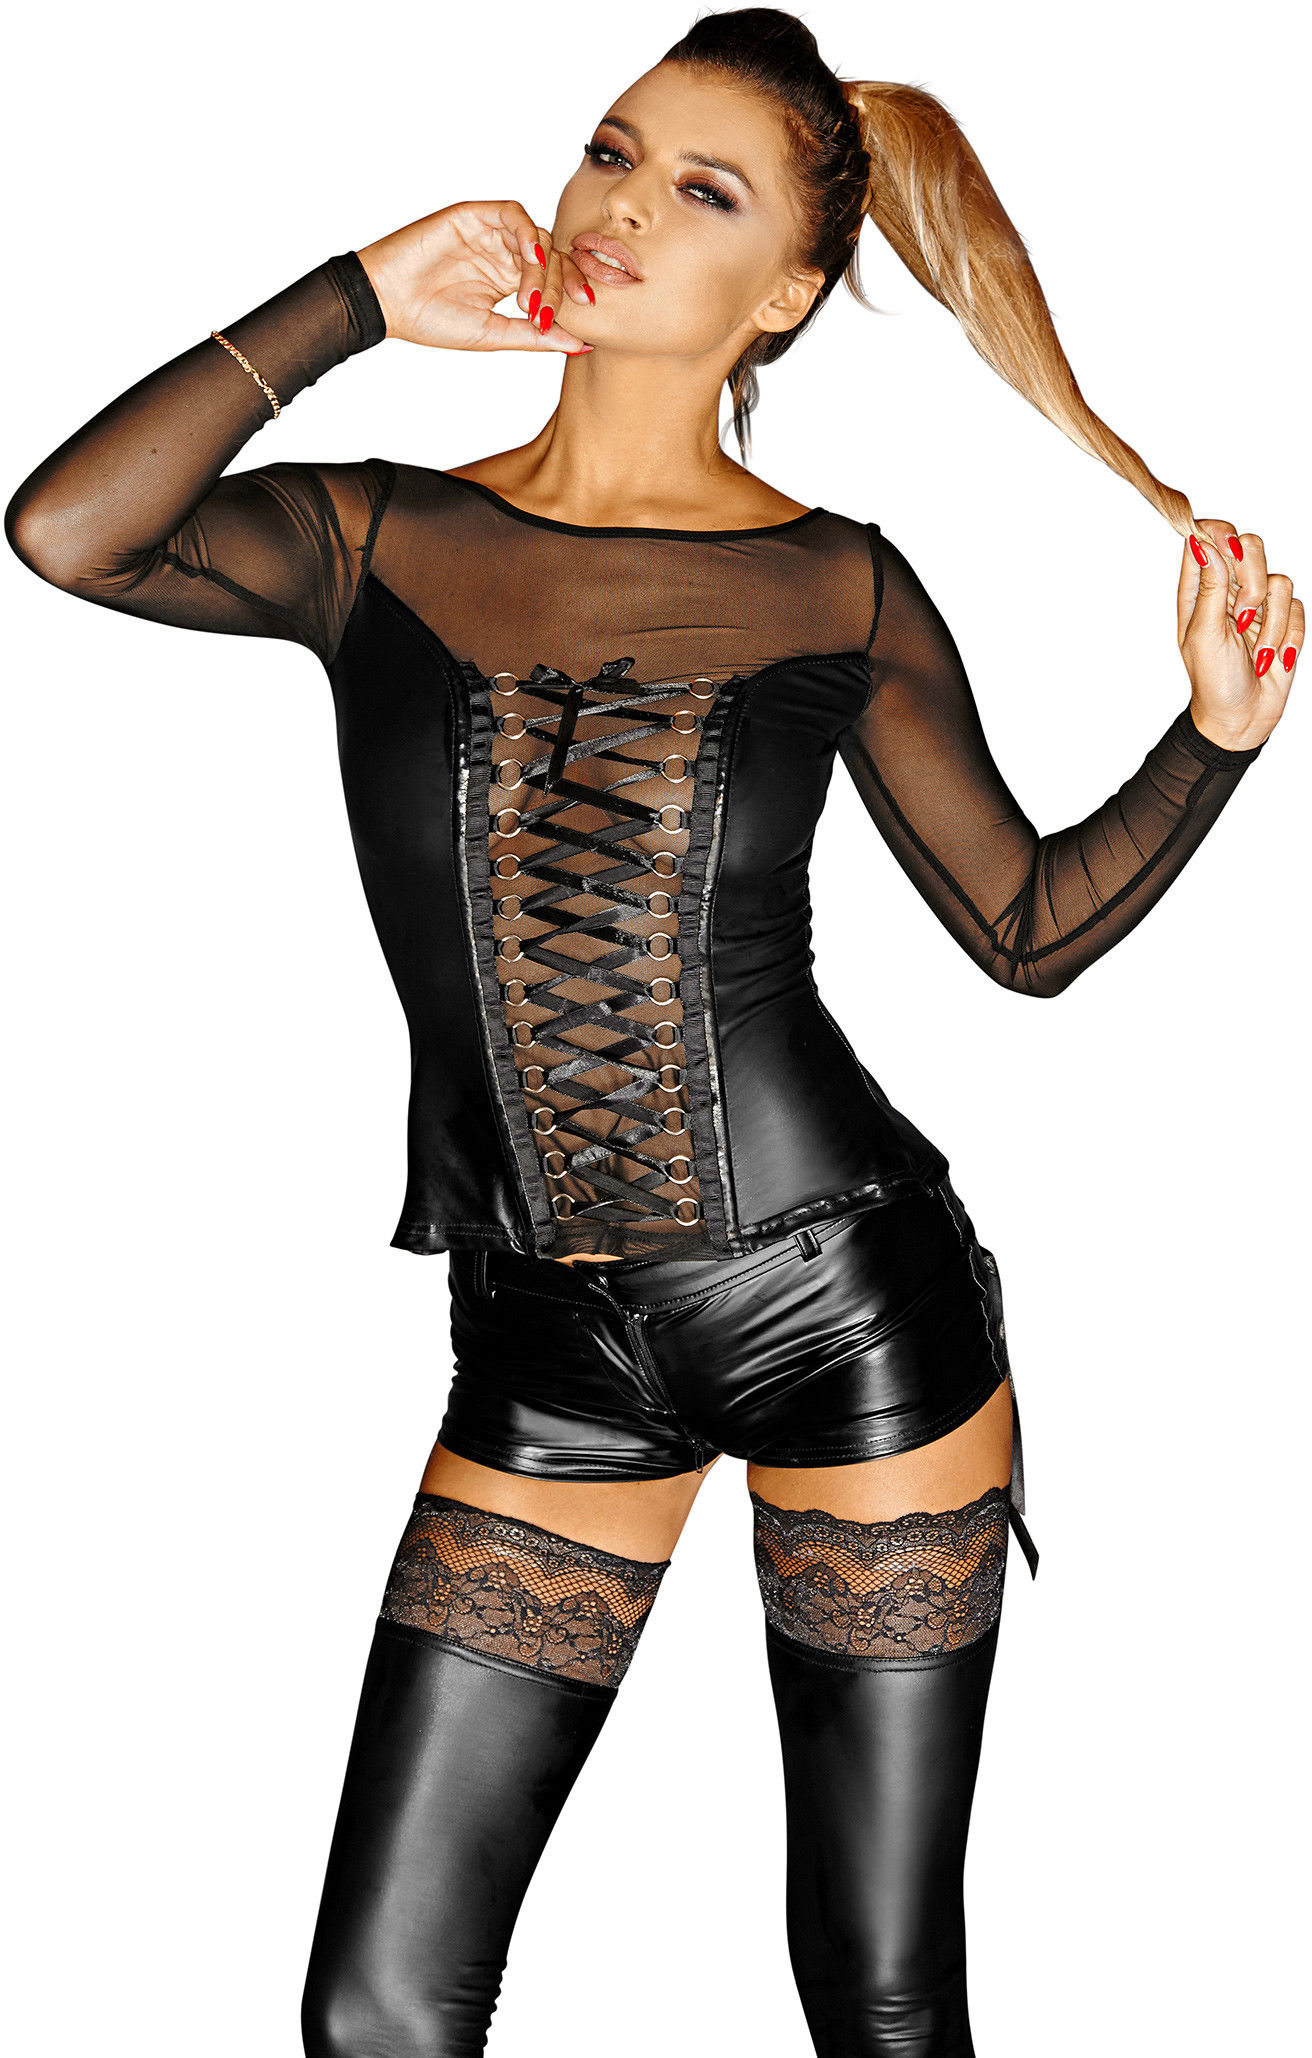 Noir Handmade F130 Powerwetlook Corsage Top with Long Sleeves, Lacing and Tull Inserts Narcissist M